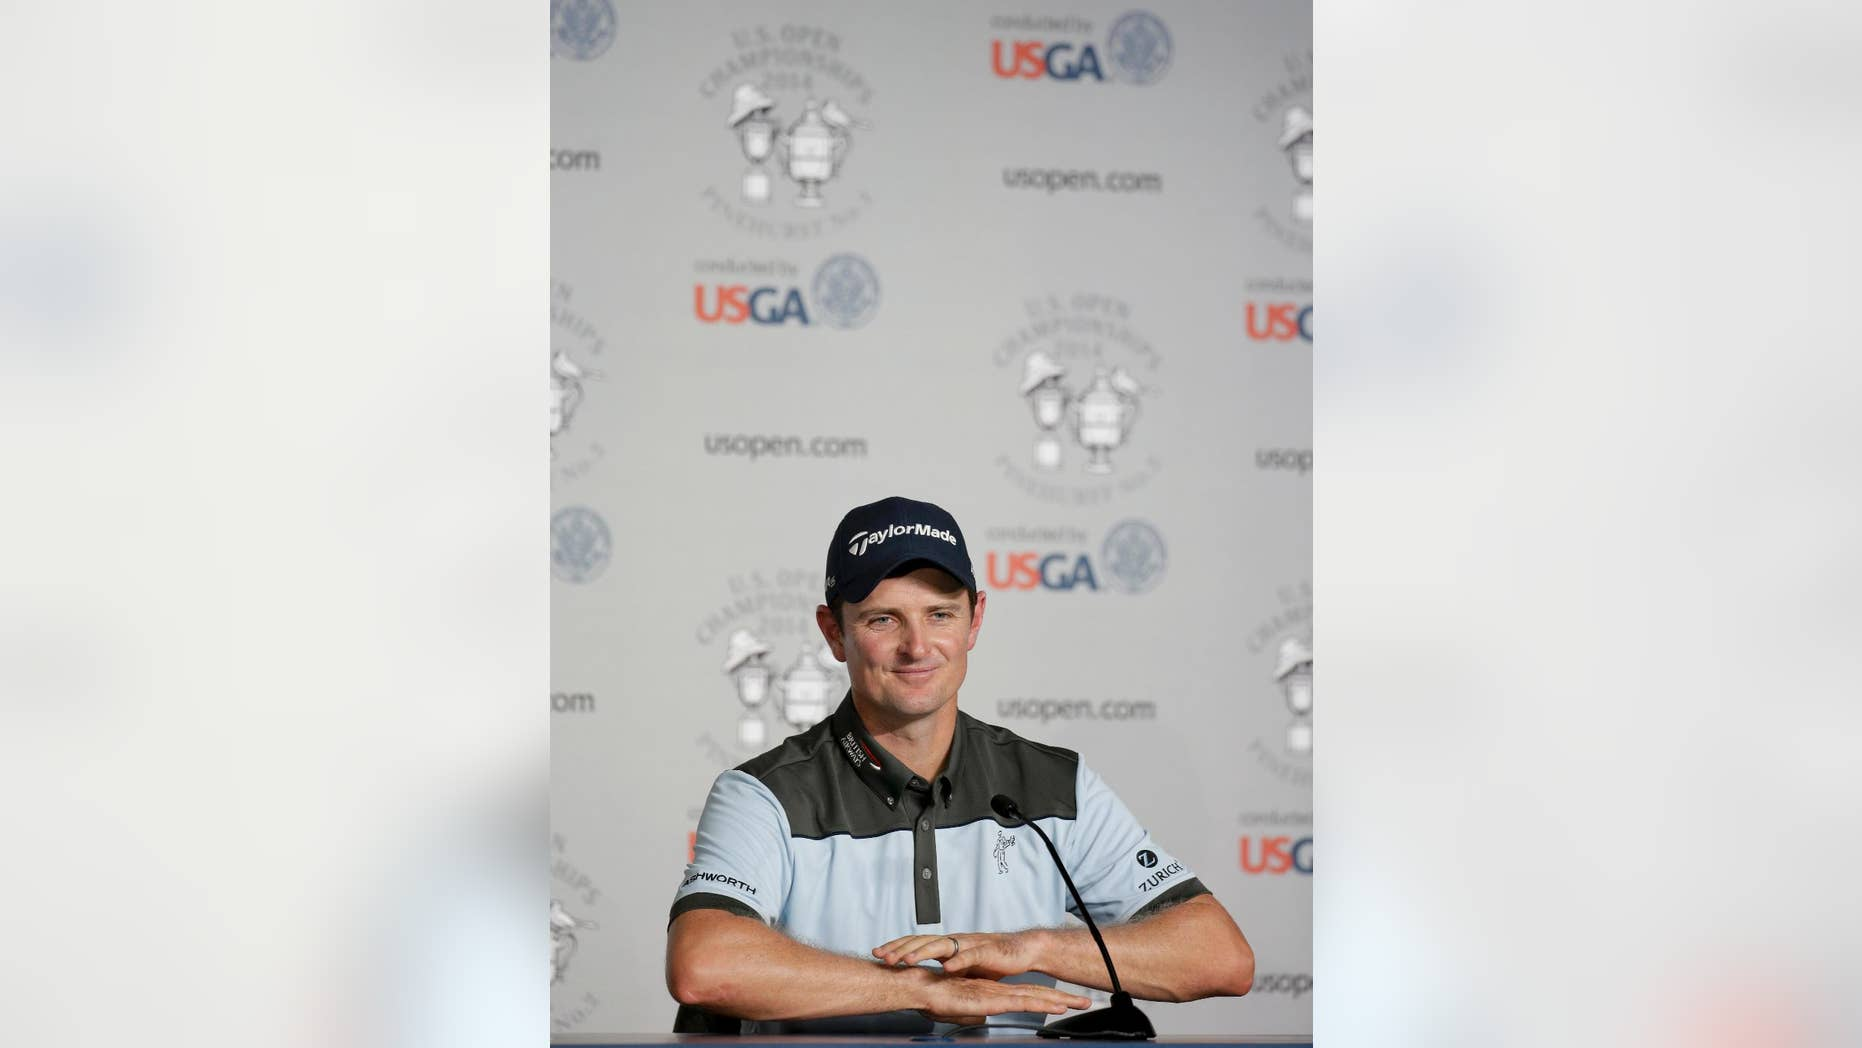 Justin Rose, of England, talks during a news conference for the U.S. Open golf tournament in Pinehurst, N.C., Tuesday, June 10, 2014. The tournament starts Thursday. (AP Photo/Eric Gay)